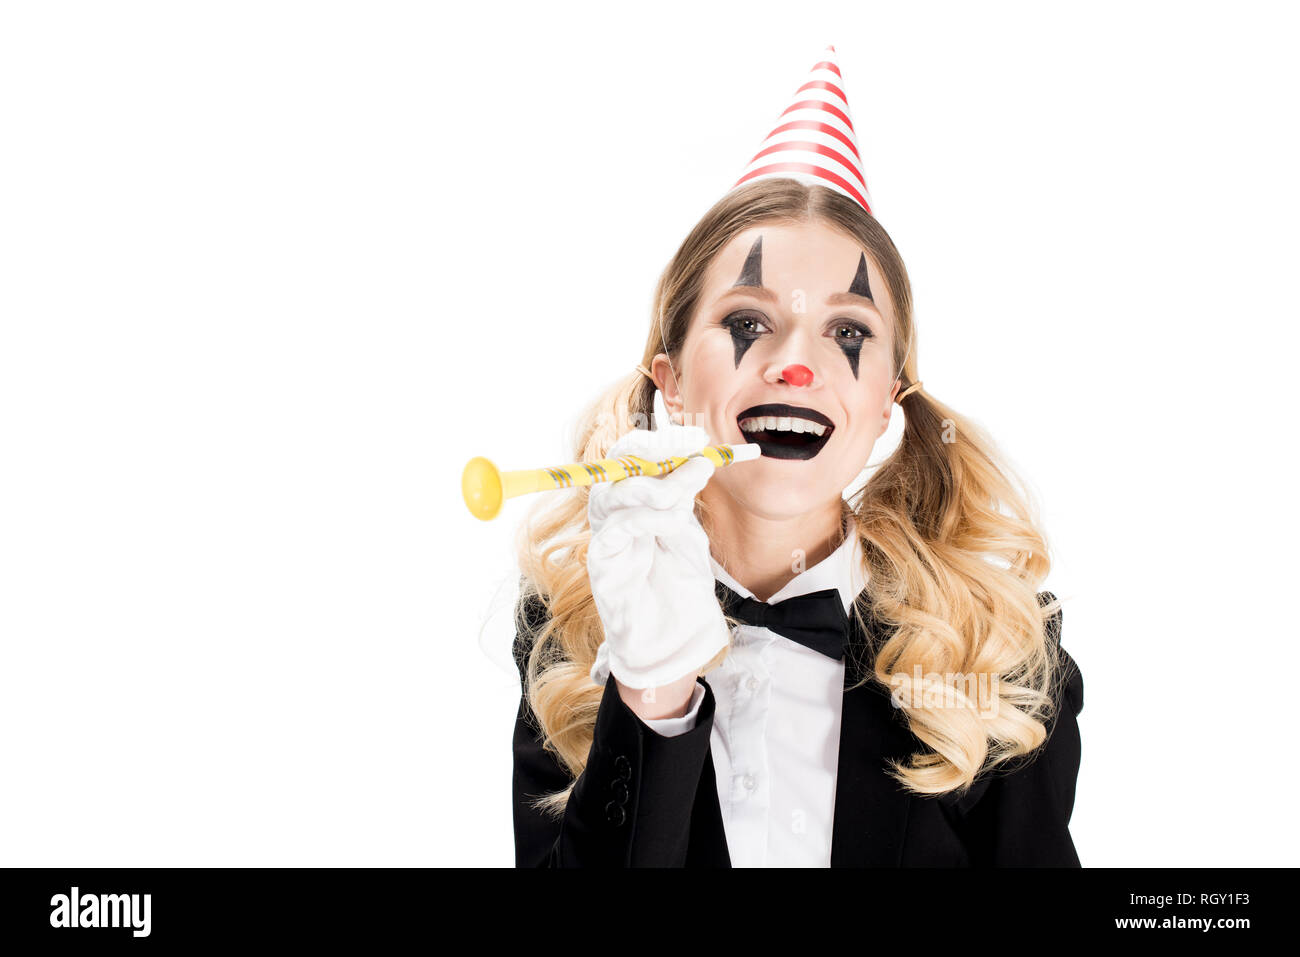 female clown in suit smiling while holding birthday blower isolated on white - Stock Image